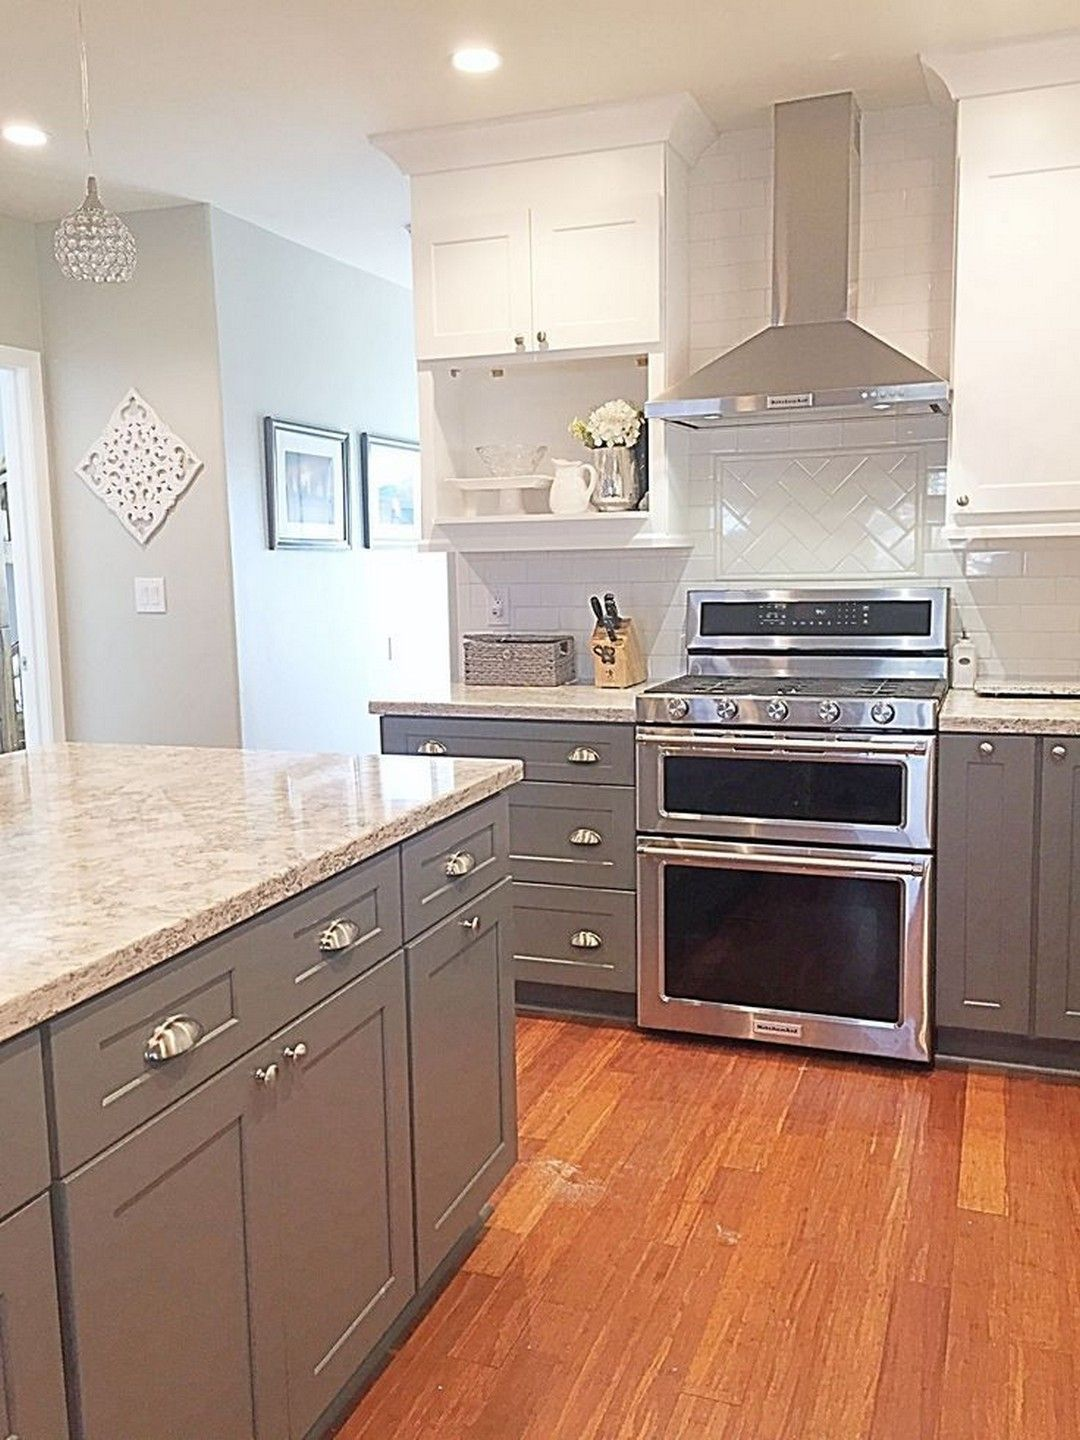 Pin By Sweet Foods Food Recipe Ea On Kitchen Decoration Creative Kitchen Cabinet Design Kitchen Cabinet Trends Kitchen Cabinets Decor